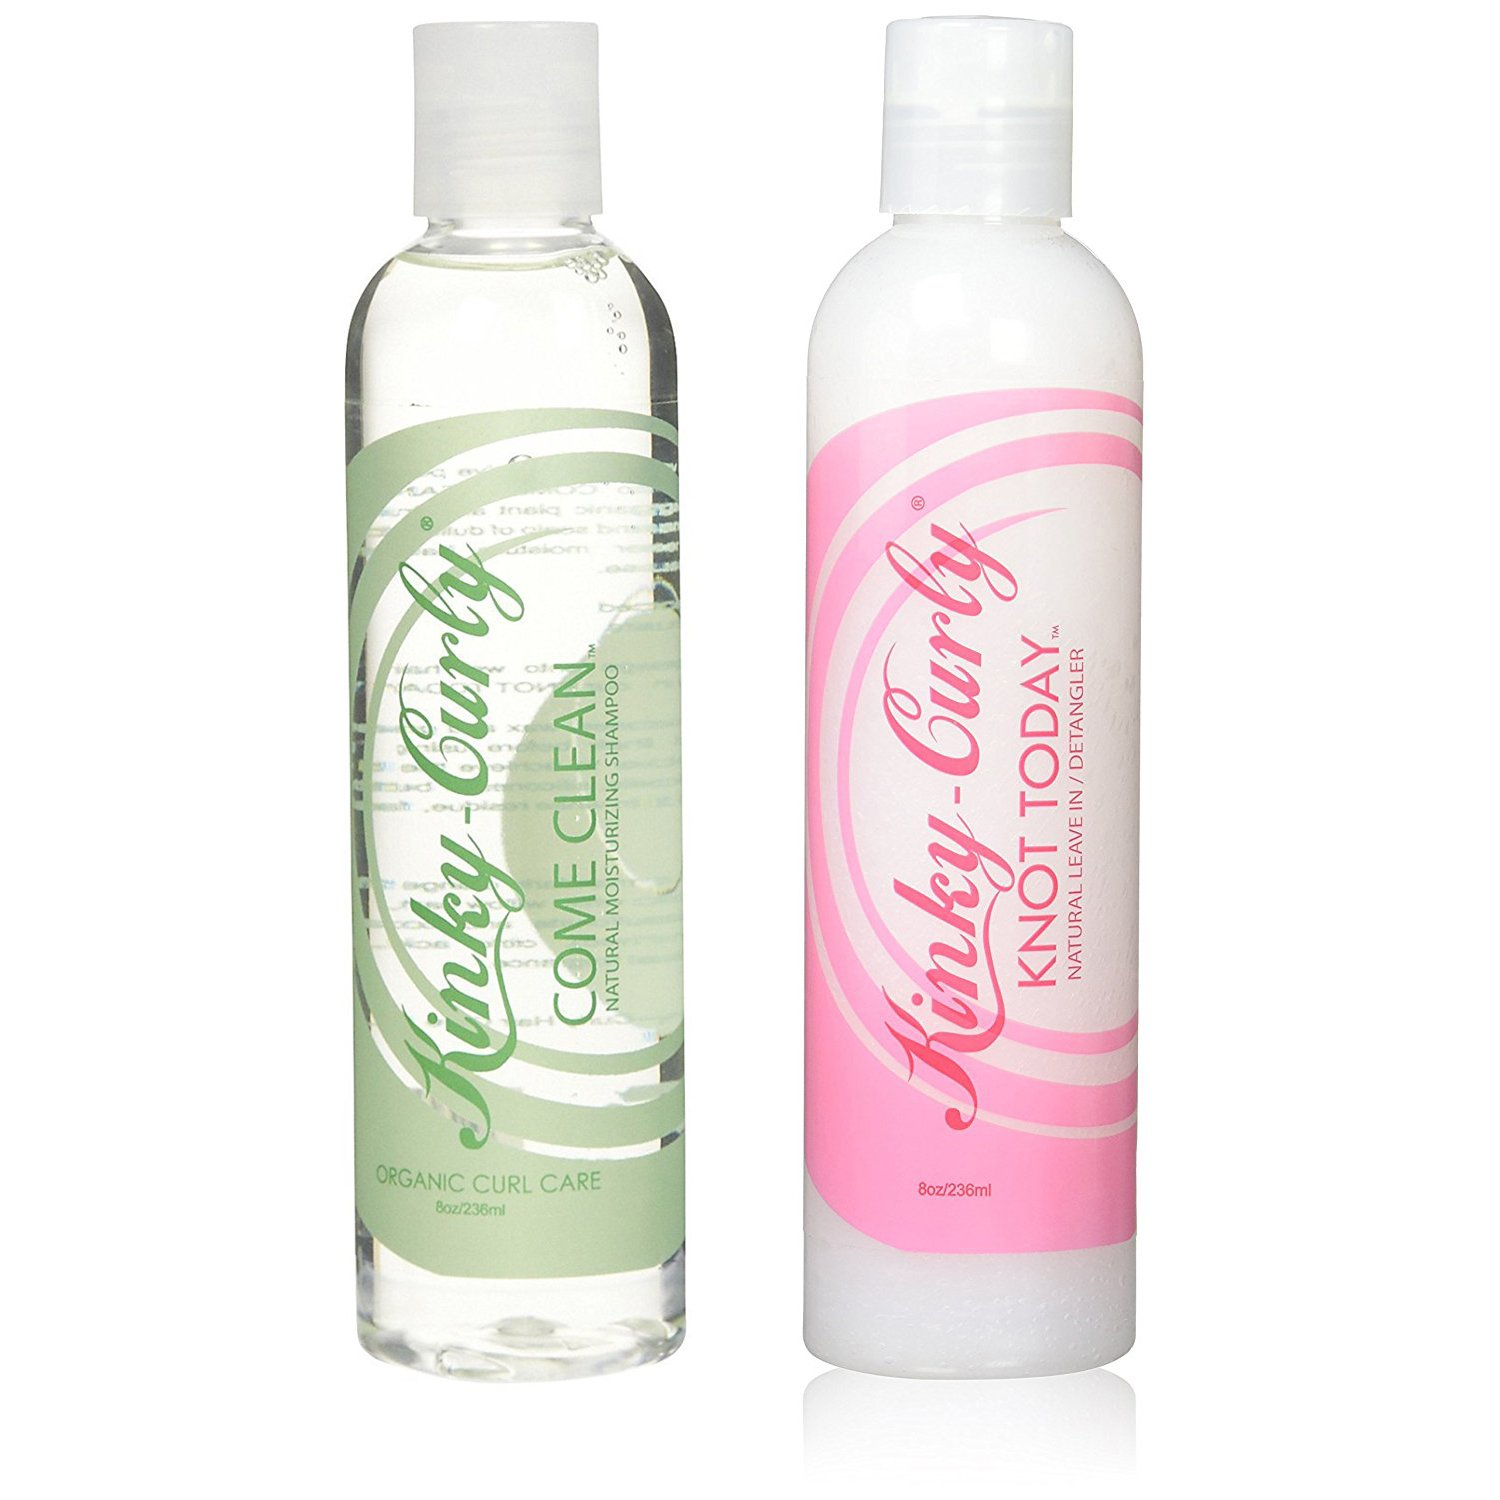 Kinky curls hair products